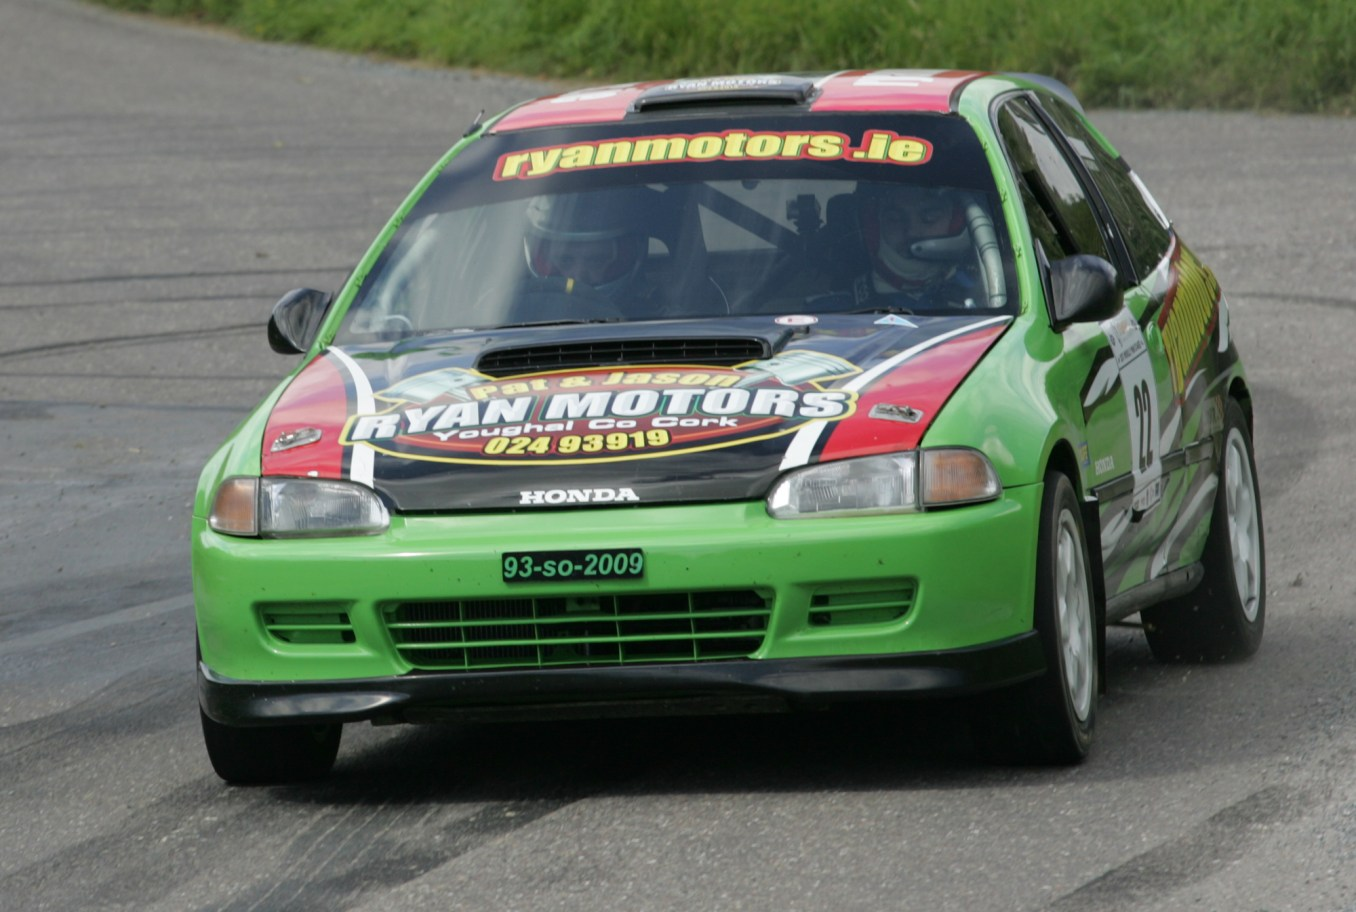 Youghals Jason Ryan in the Honda only drives flat out another of the IMC Motor Clubs Quick men